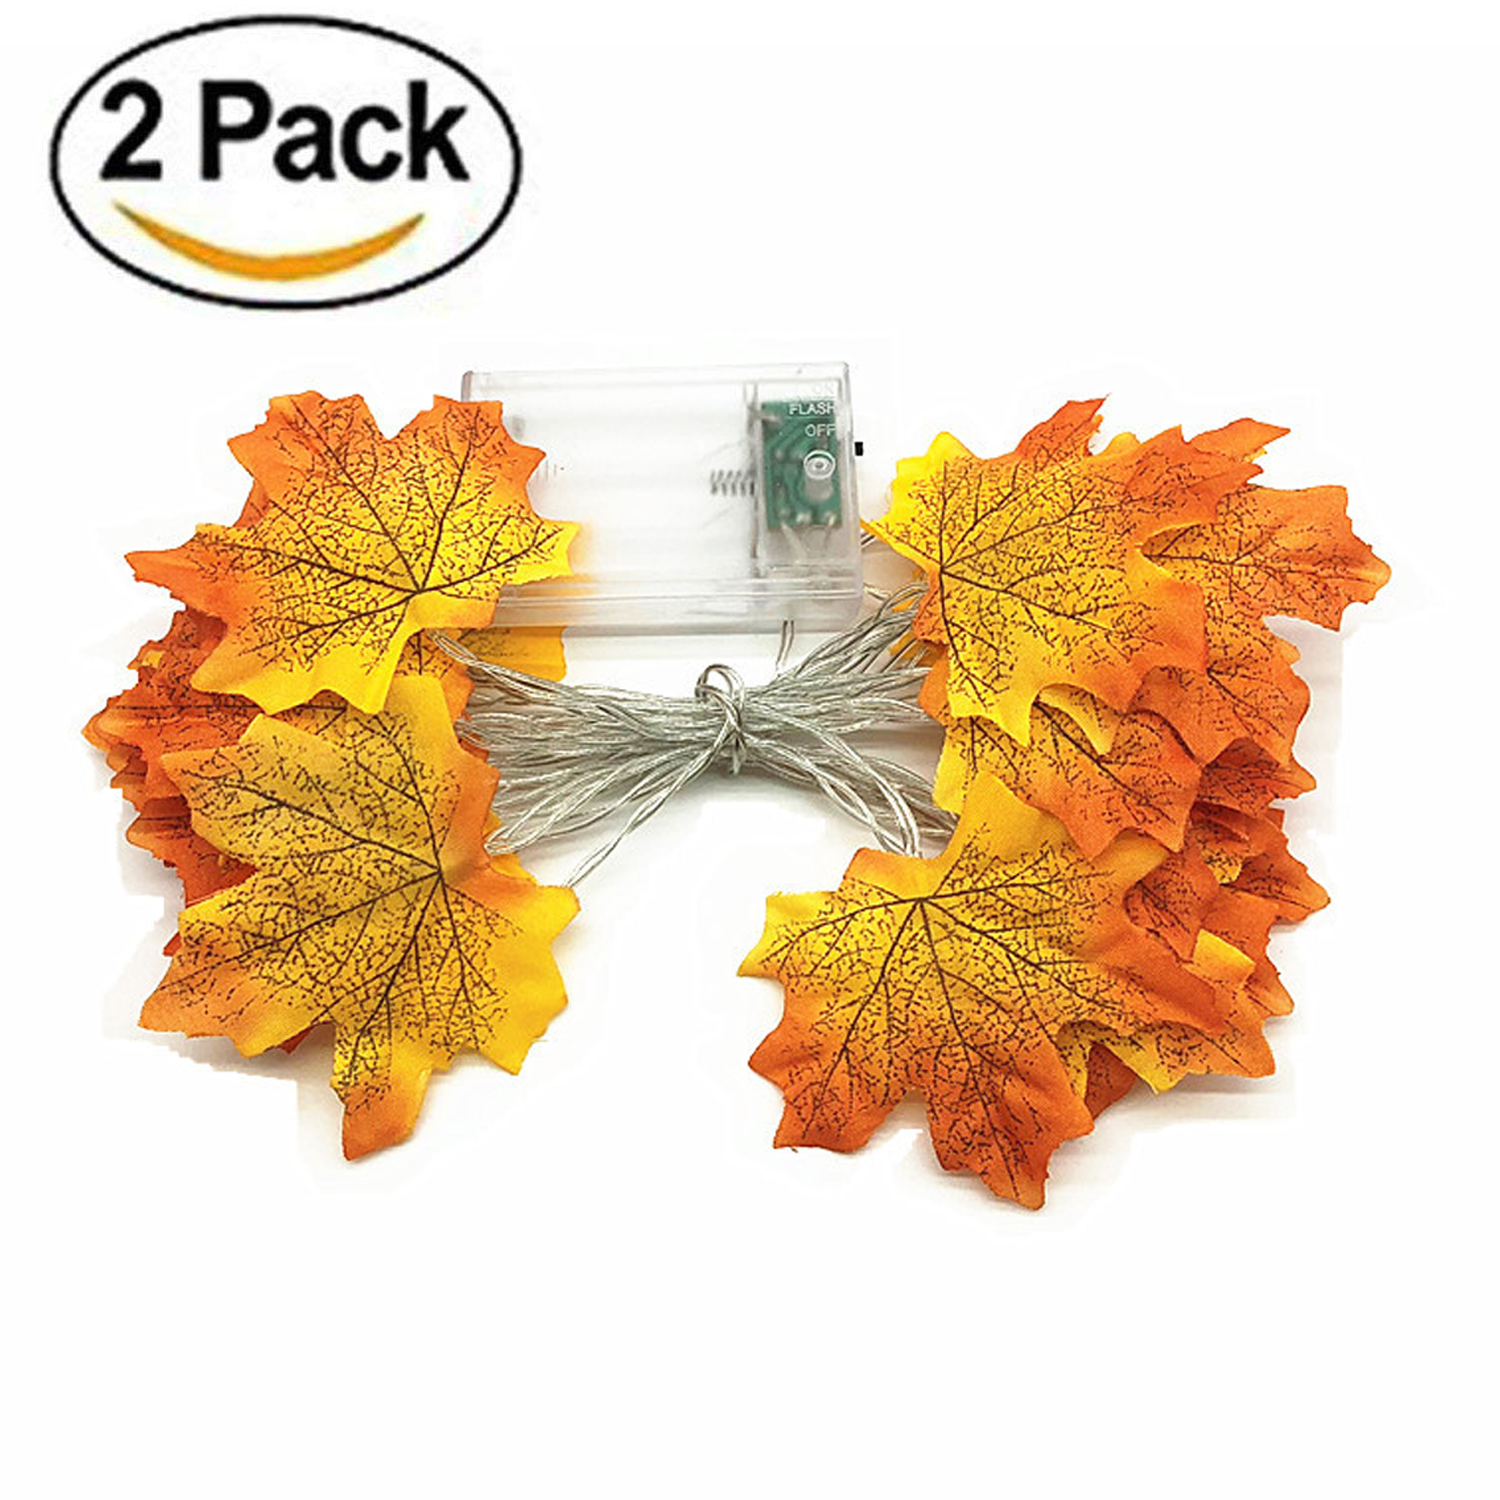 Thanksgiving Decorations Lighted Fall Garland Thanksgiving Decor Halloween String Lights 13 2 Feet 40 Led Thanksgiving Gift Walmart Com Walmart Com